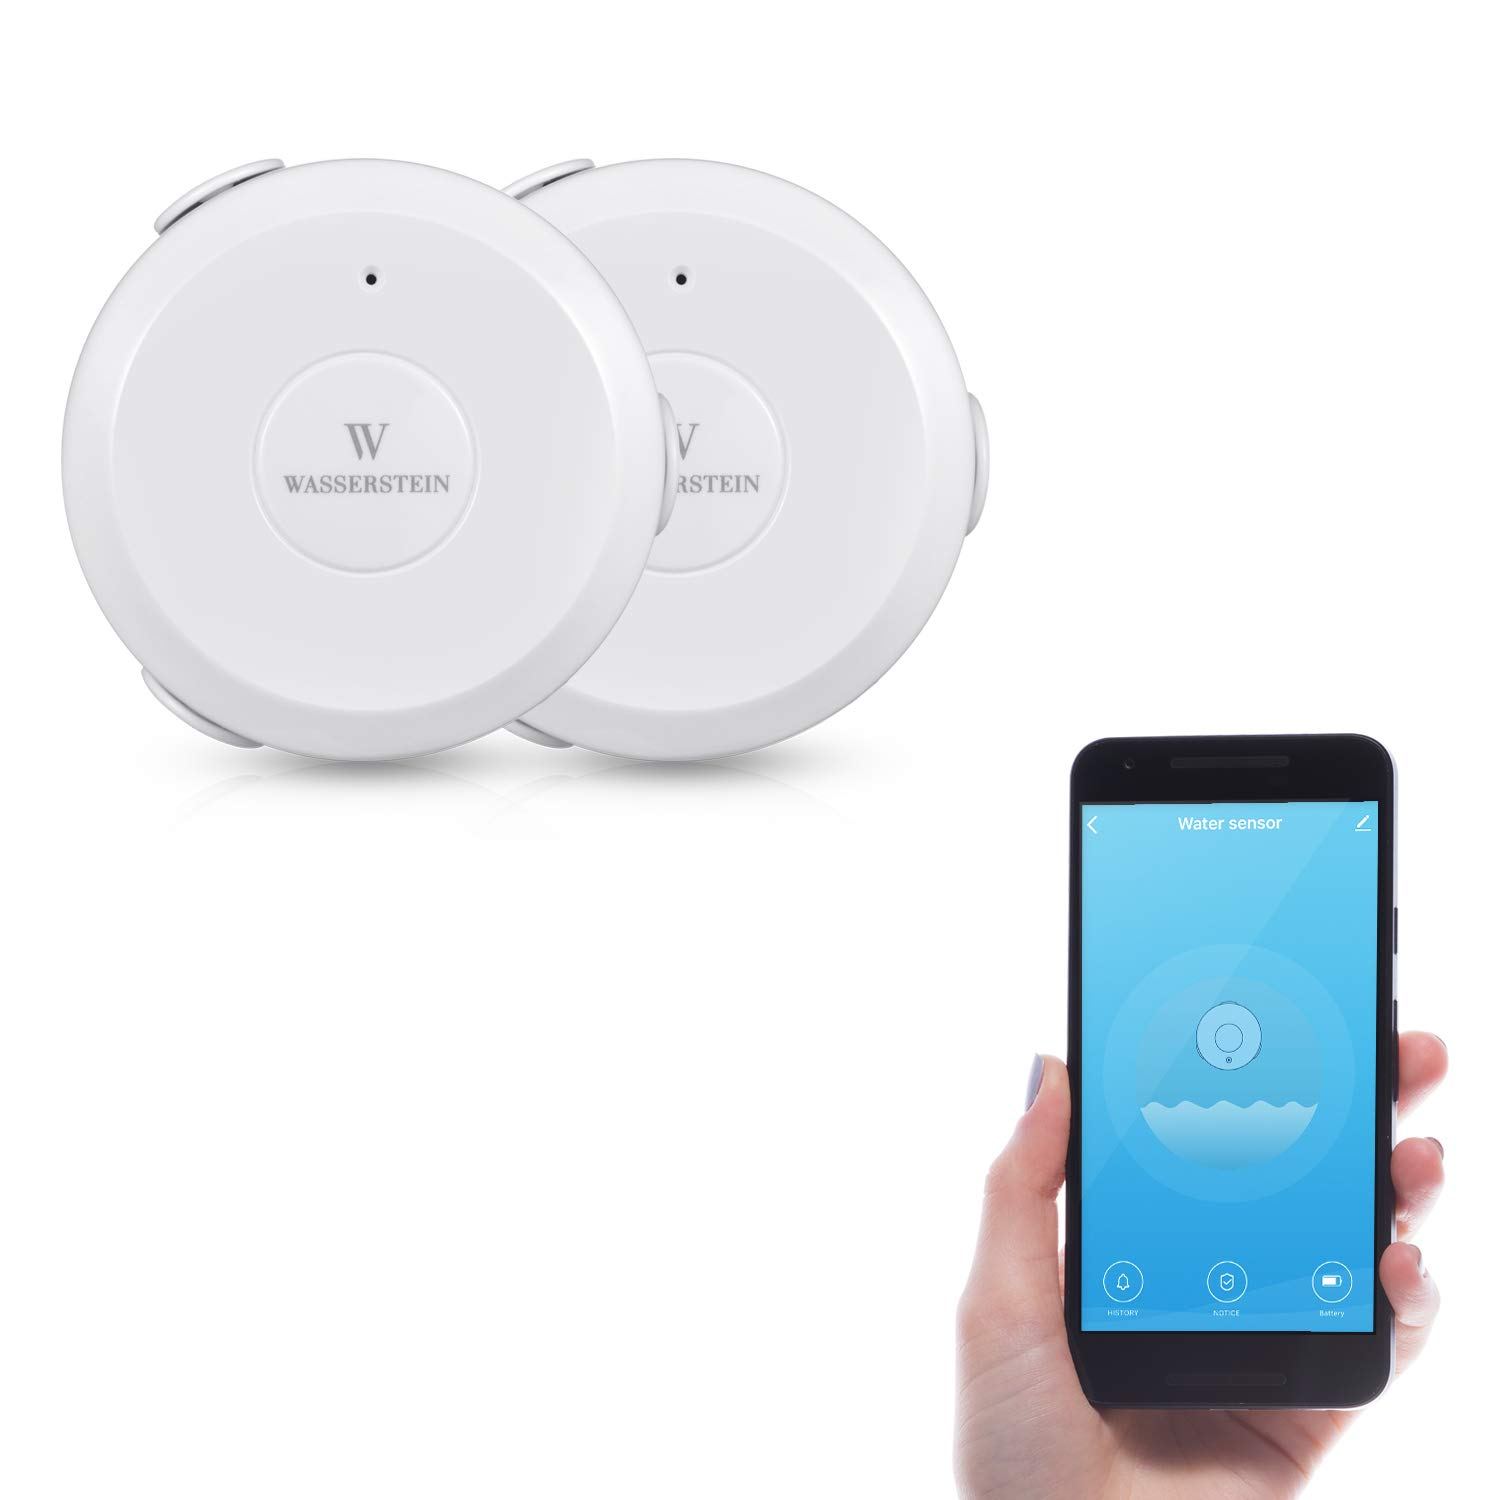 AC Powered Smart Wi-Fi Water Sensor, Flood and Leak Detector with 6ft/1.8m Cable- Alarm and App Notification Alerts, No Expensive Hub Required, Simple Plug & Play by Wasserstein (2 Pack) by Wasserstein